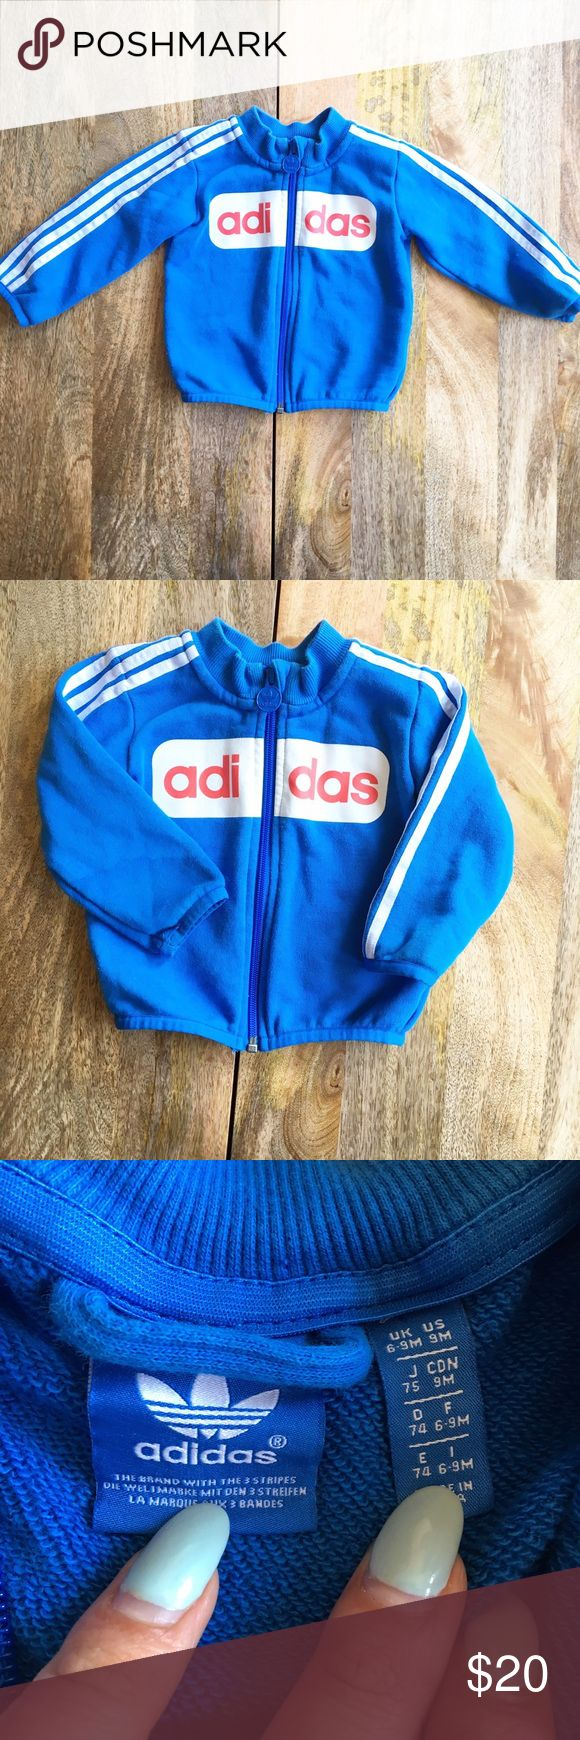 Infant Adidas Zip Up Item: Infant Adidas Zip Up   - Size: 6-9M - Material: Cotton/Poly  - Condition: GUC  - Color: Blue/White/Red      * Almost all my prices are negotiable and no offer offends me! * 🦄BUNDLE FOR 30% OFF!🦄 Adidas Jackets & Coats